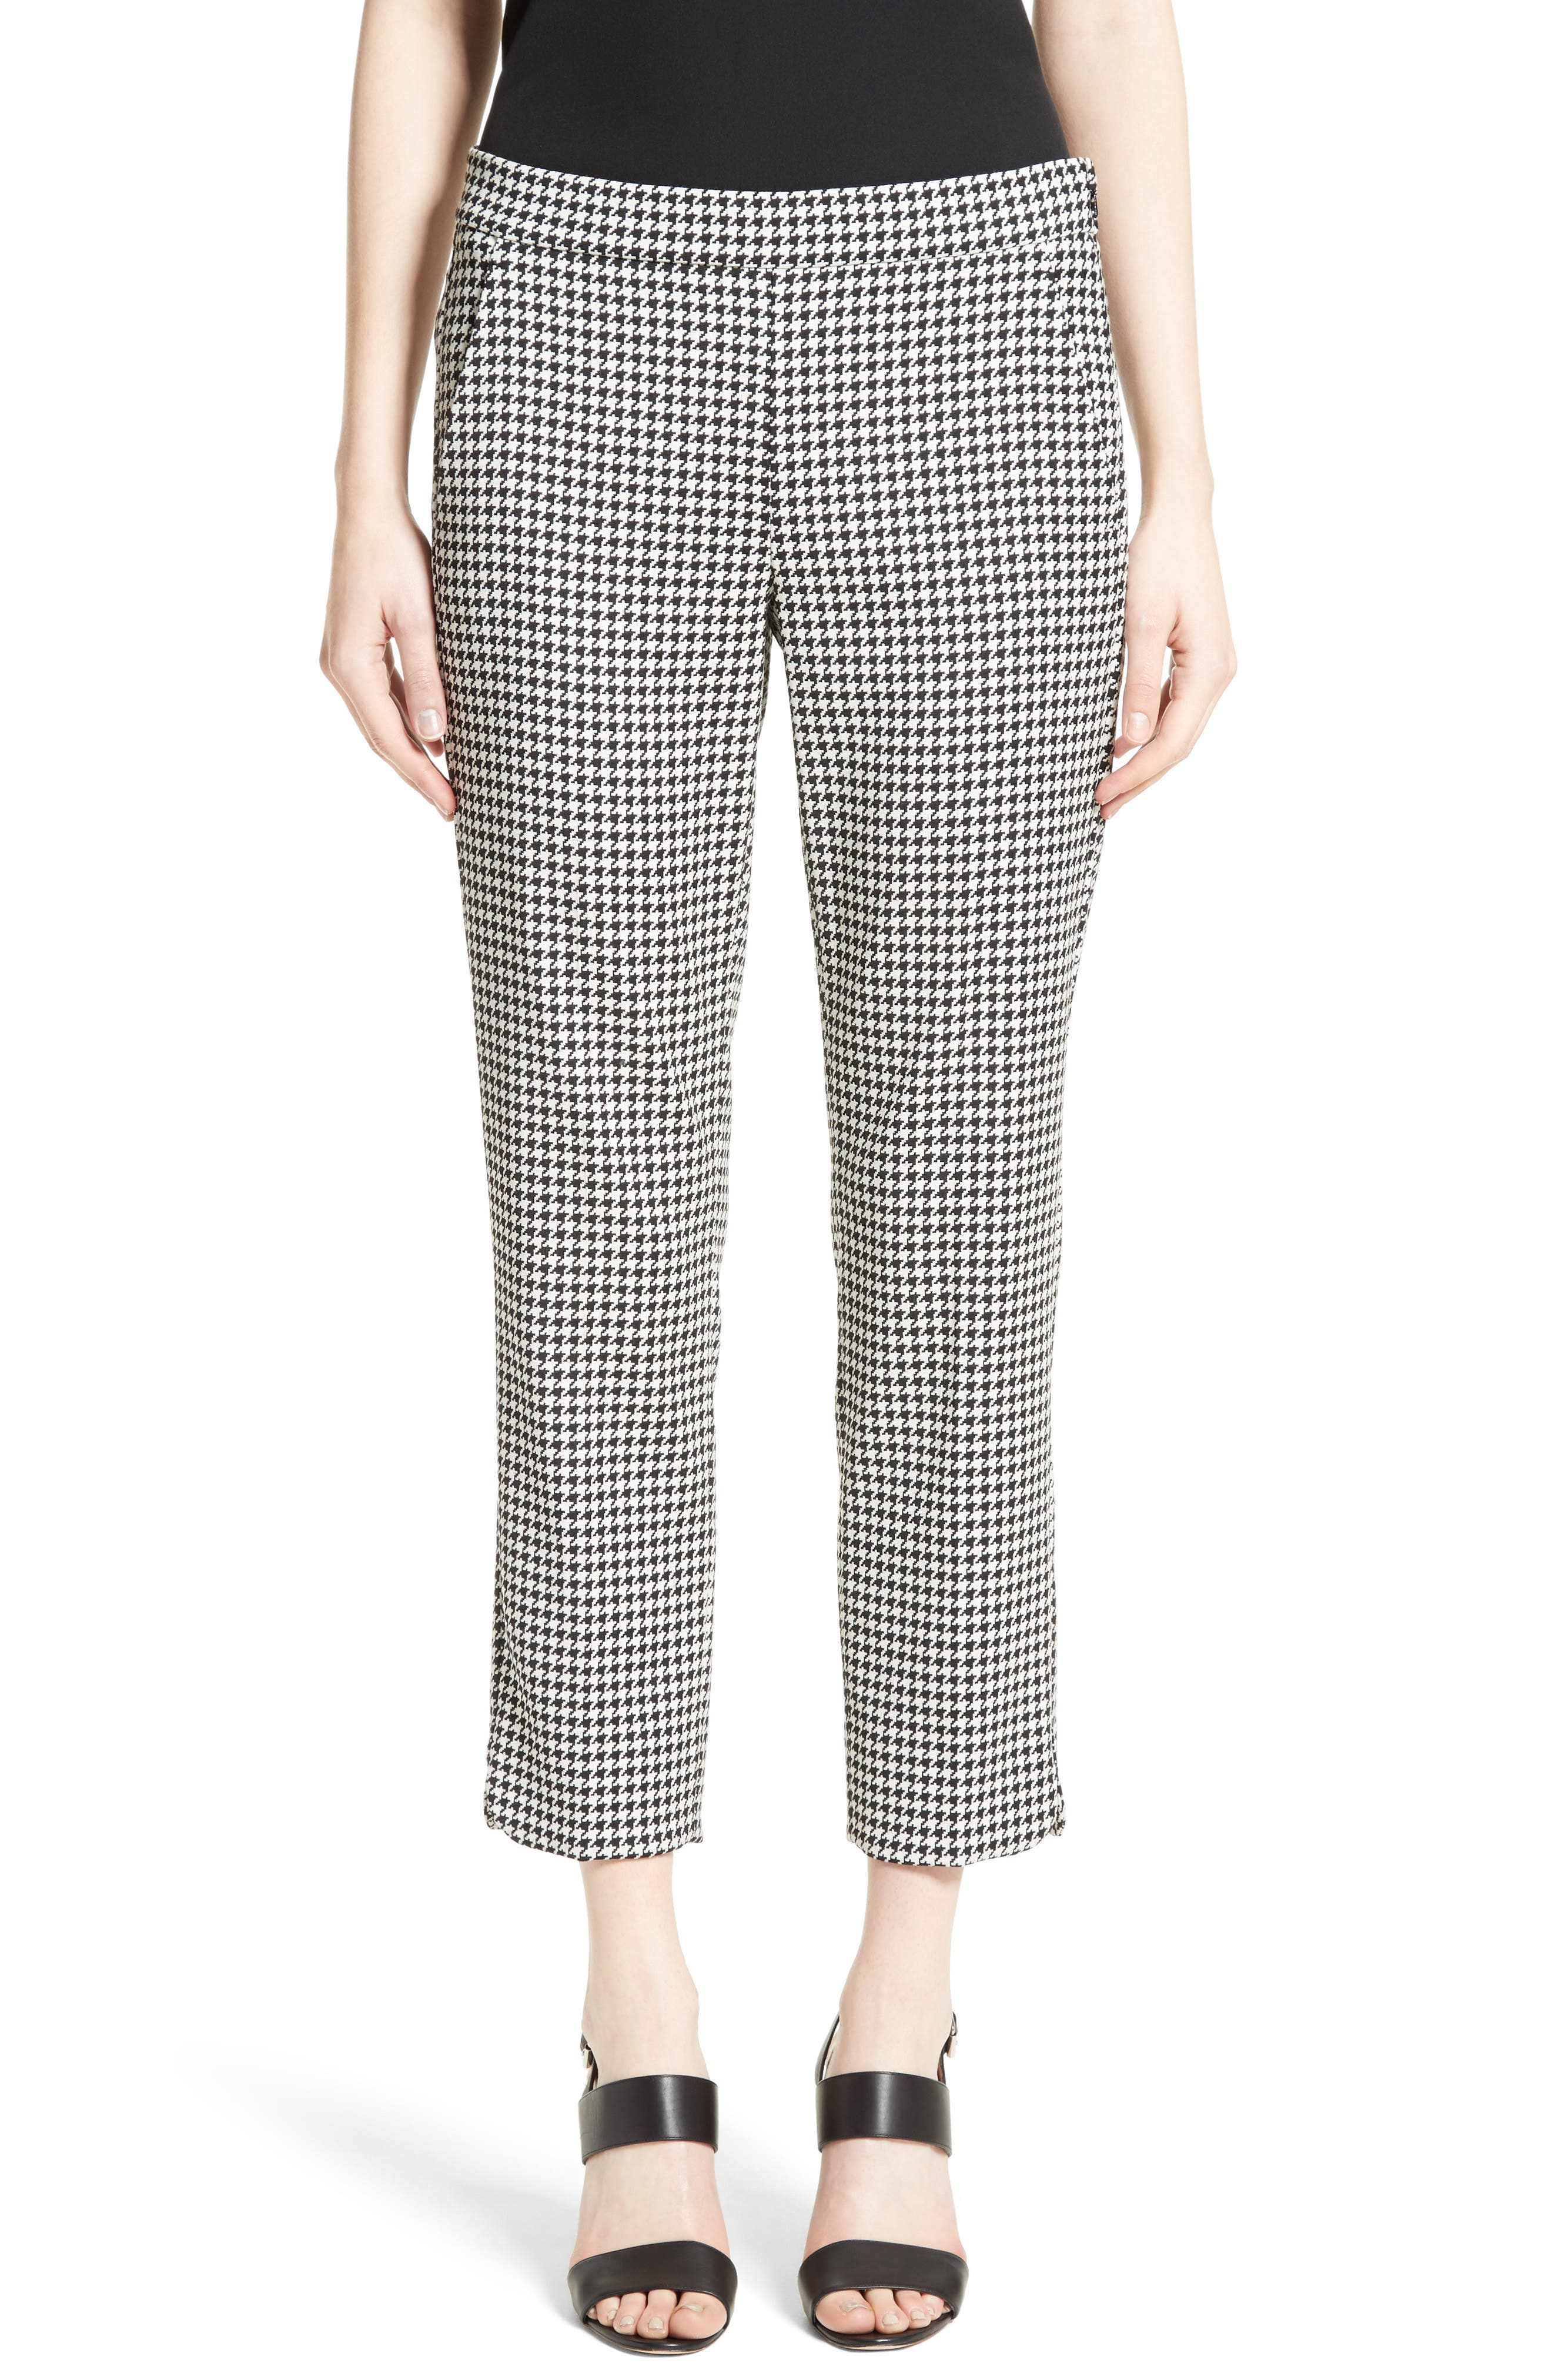 Astrale Houndstooth Wool Blend Pants,                             Main thumbnail 1, color,                             Black